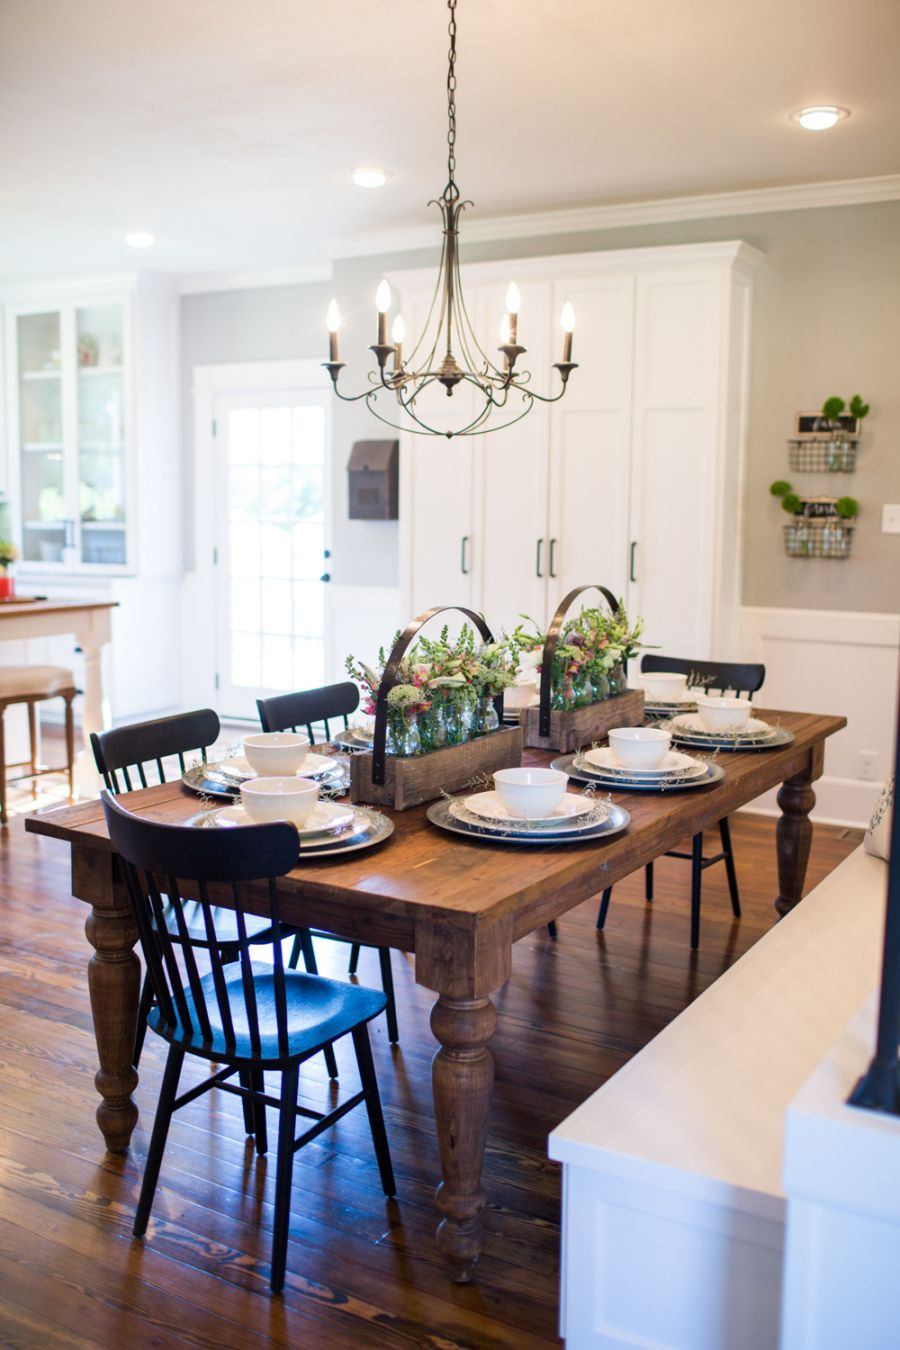 Fixer upper kitchen chairs - Our Favorite Hgtv Fixer Upper Homes By Chip Joanna Gaines Http